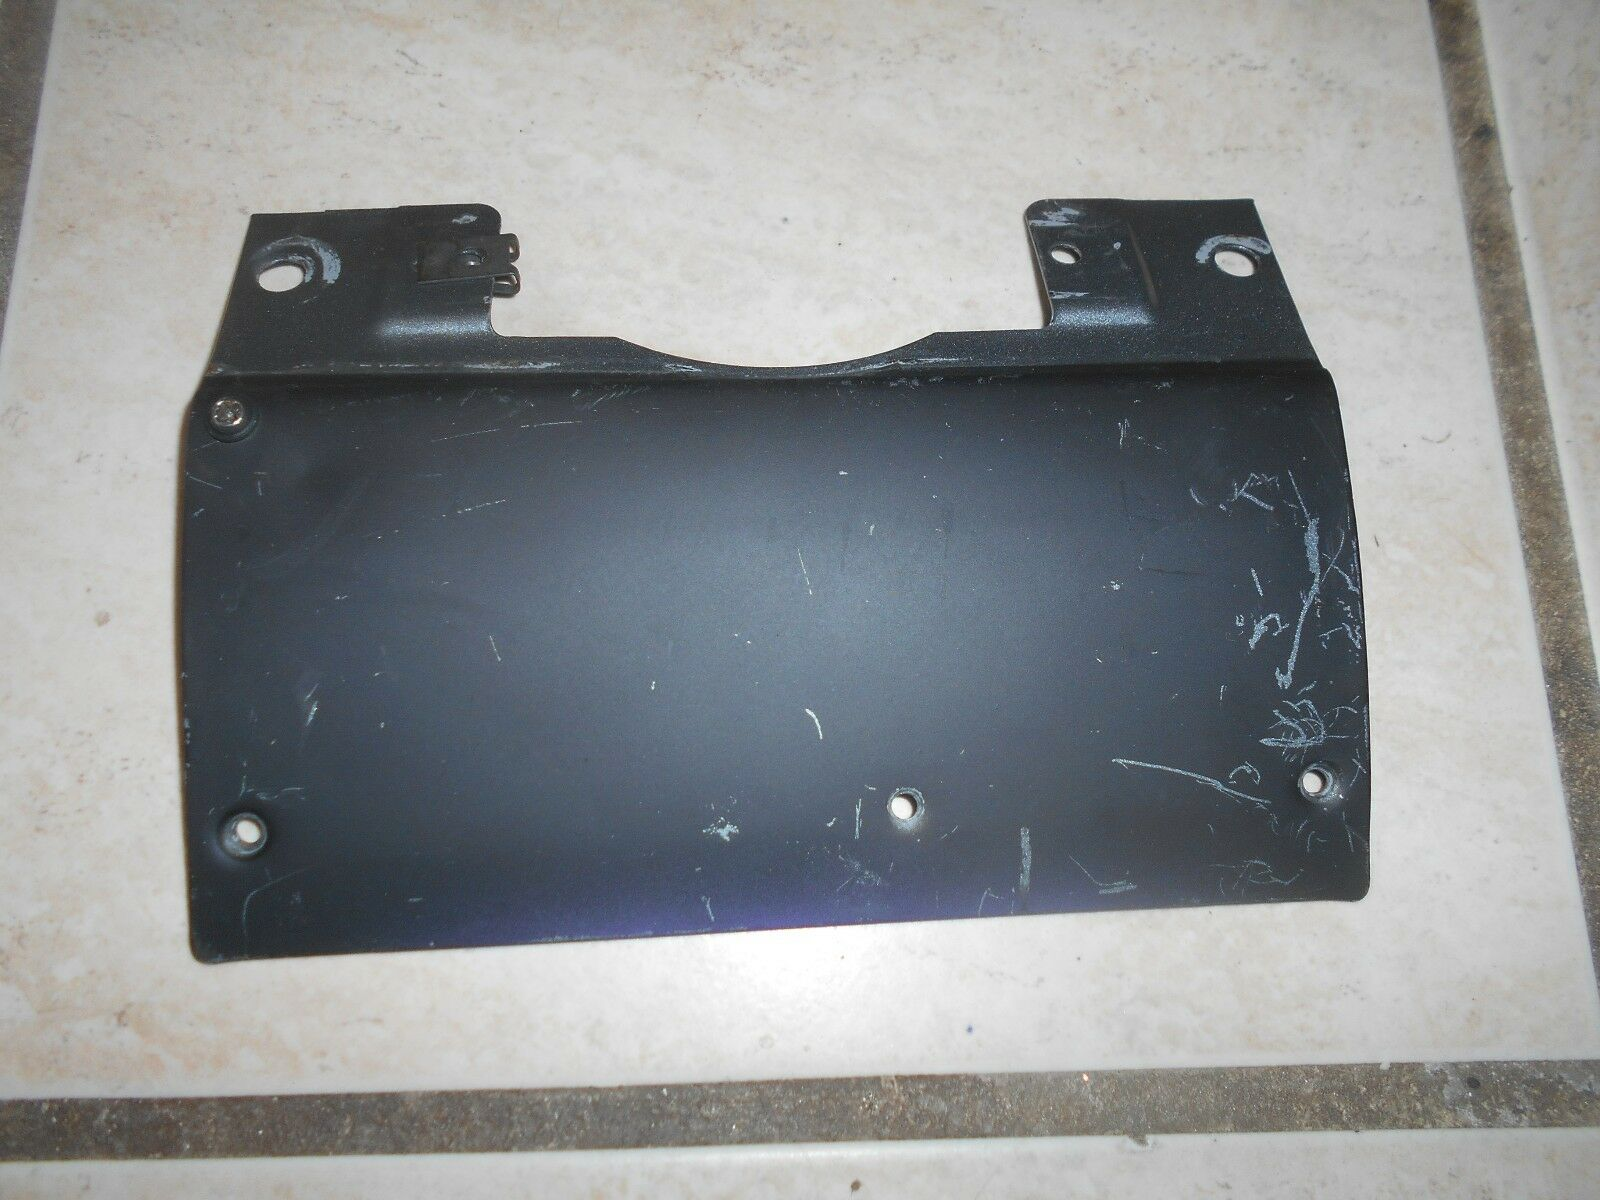 Used Gmc Dash Parts For Sale Page 72 1973 Sierra Fuse Box 73 191987 Chevy Truck 1974 1975 1976 1977 1978 1979 1980 1981 1982 1983 1984 1985 1986 19191987 1988 1989 1990 1991 Blazer Jimmy